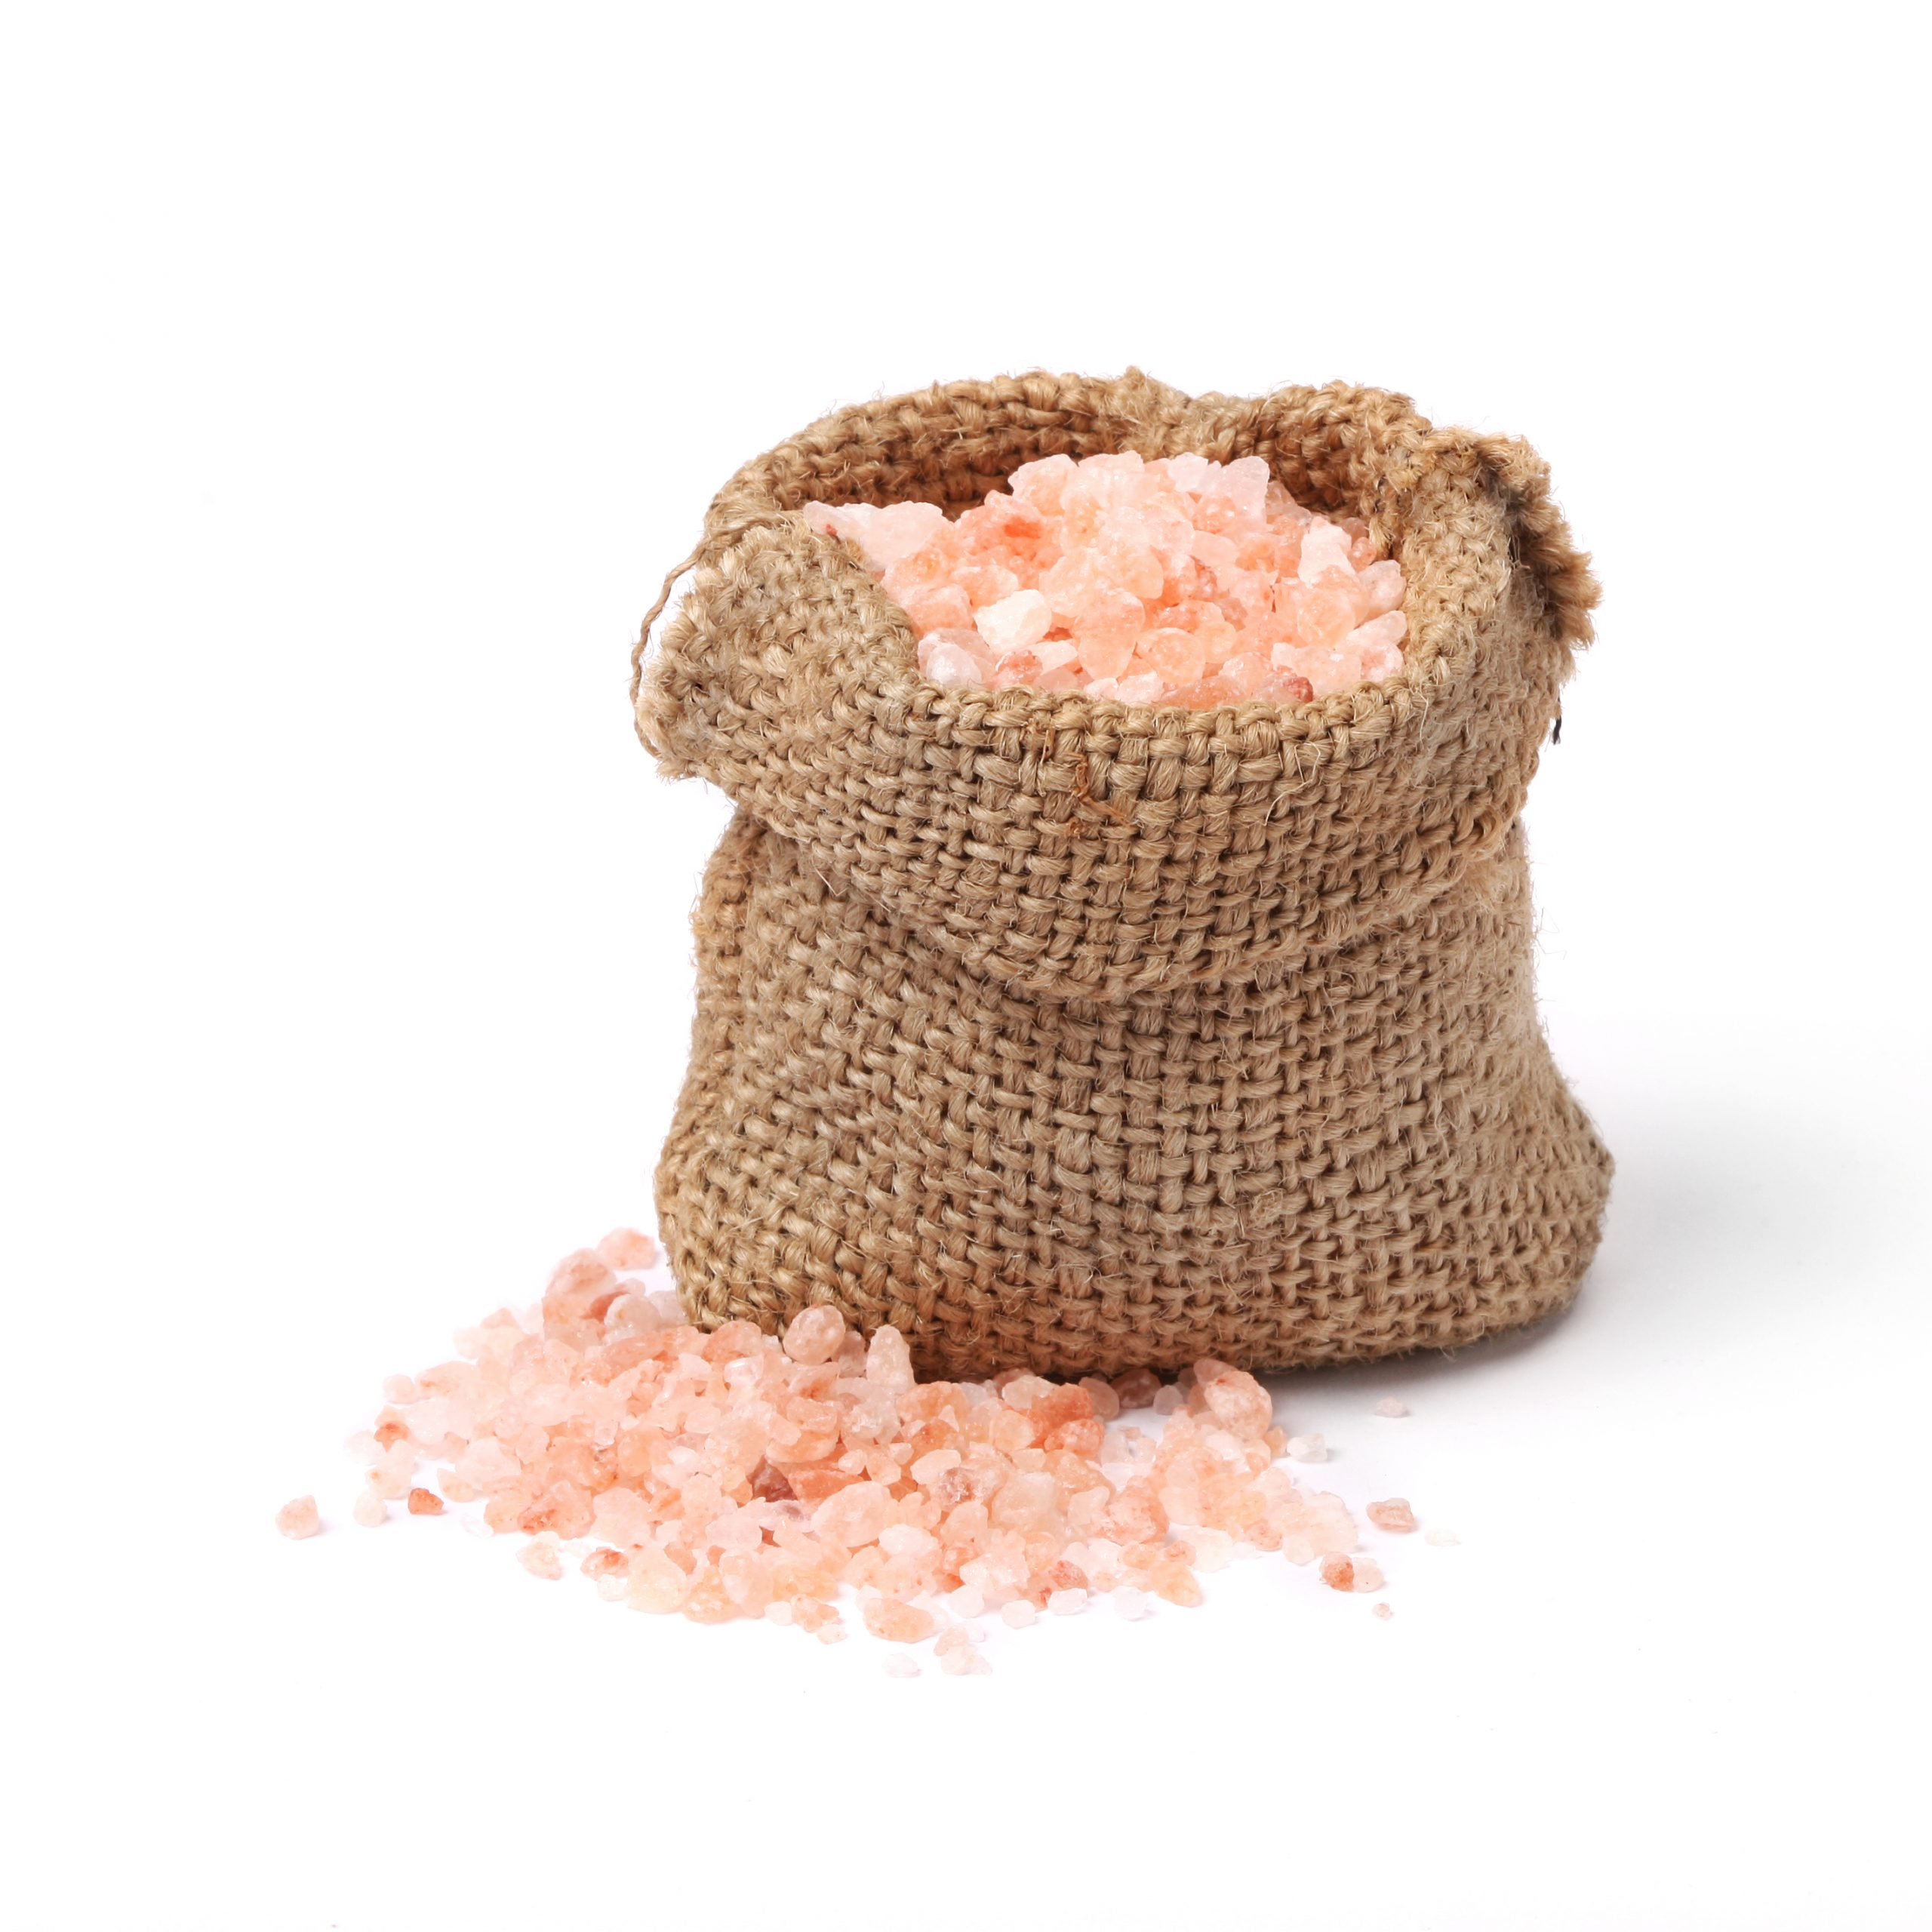 Why Is Himalayan Salt Good For You - Most purified salt